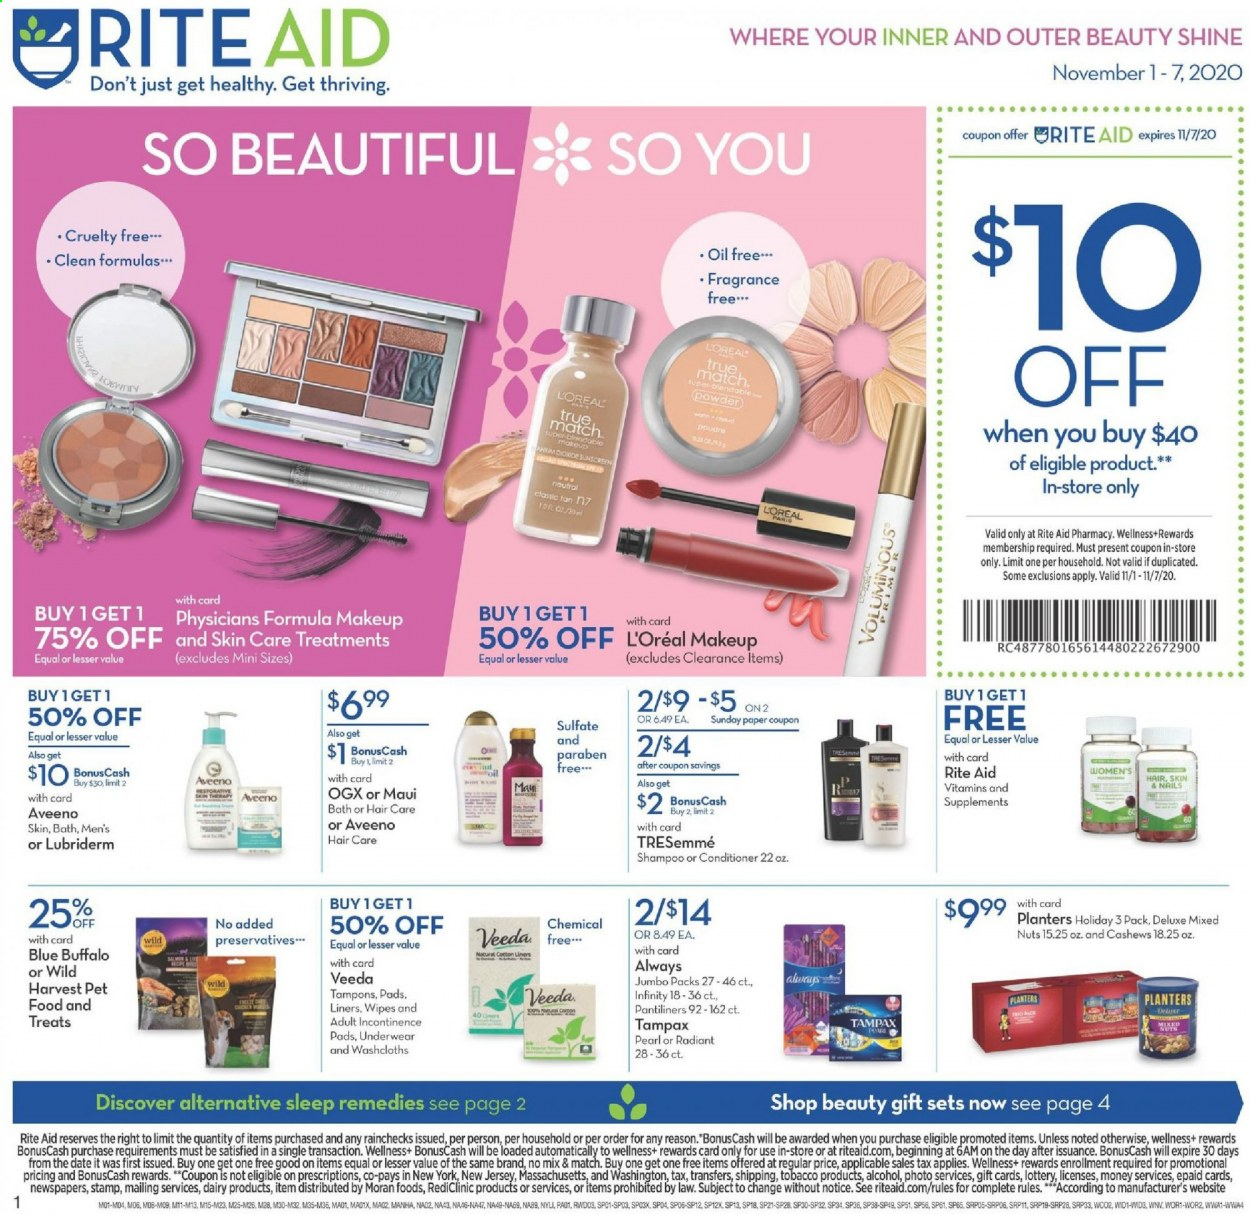 RITE AID Flyer - 11.01.2020 - 11.07.2020 - Sales products - always, aveeno, bath, blue buffalo, cashews, conditioner, fragrance, l'oréal, lubriderm, makeup, shampoo, tampax, tresemmé, underwear, wipes, jersey, powder, pantiliners, pads, nuts, treats, oil, discover. Page 1.